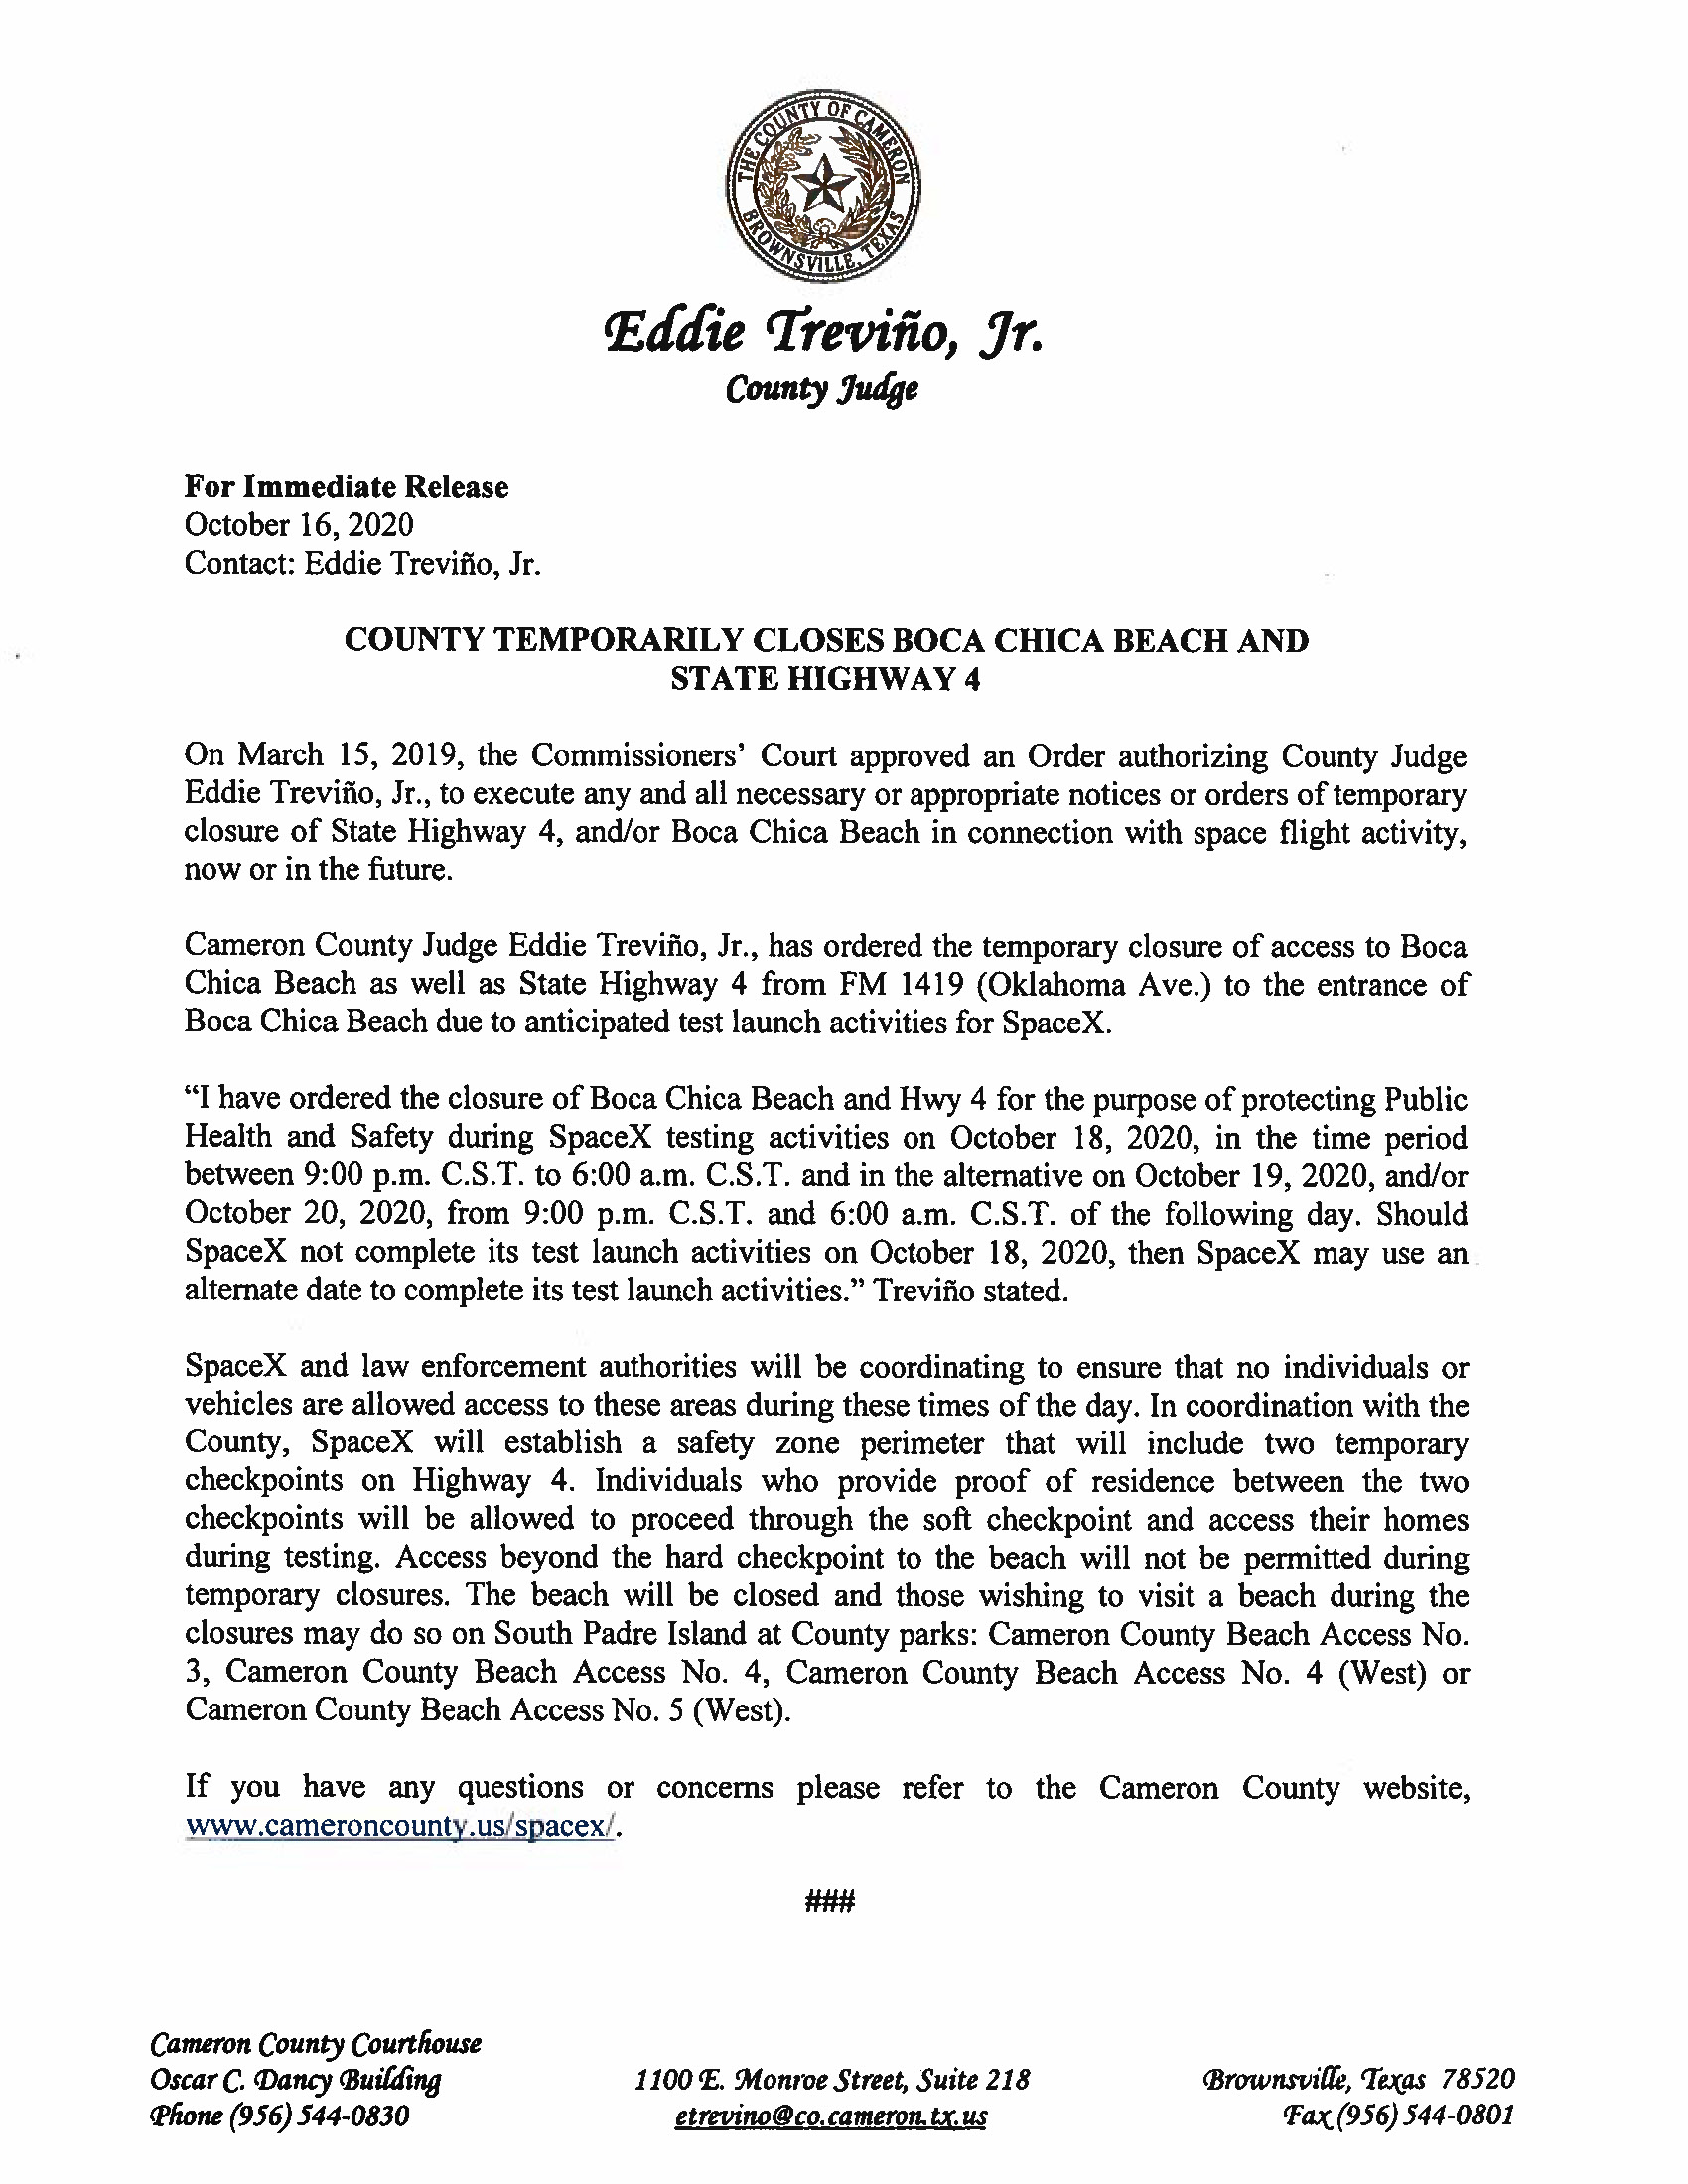 Press Release In English And Spanish.10.18.20 Page 1